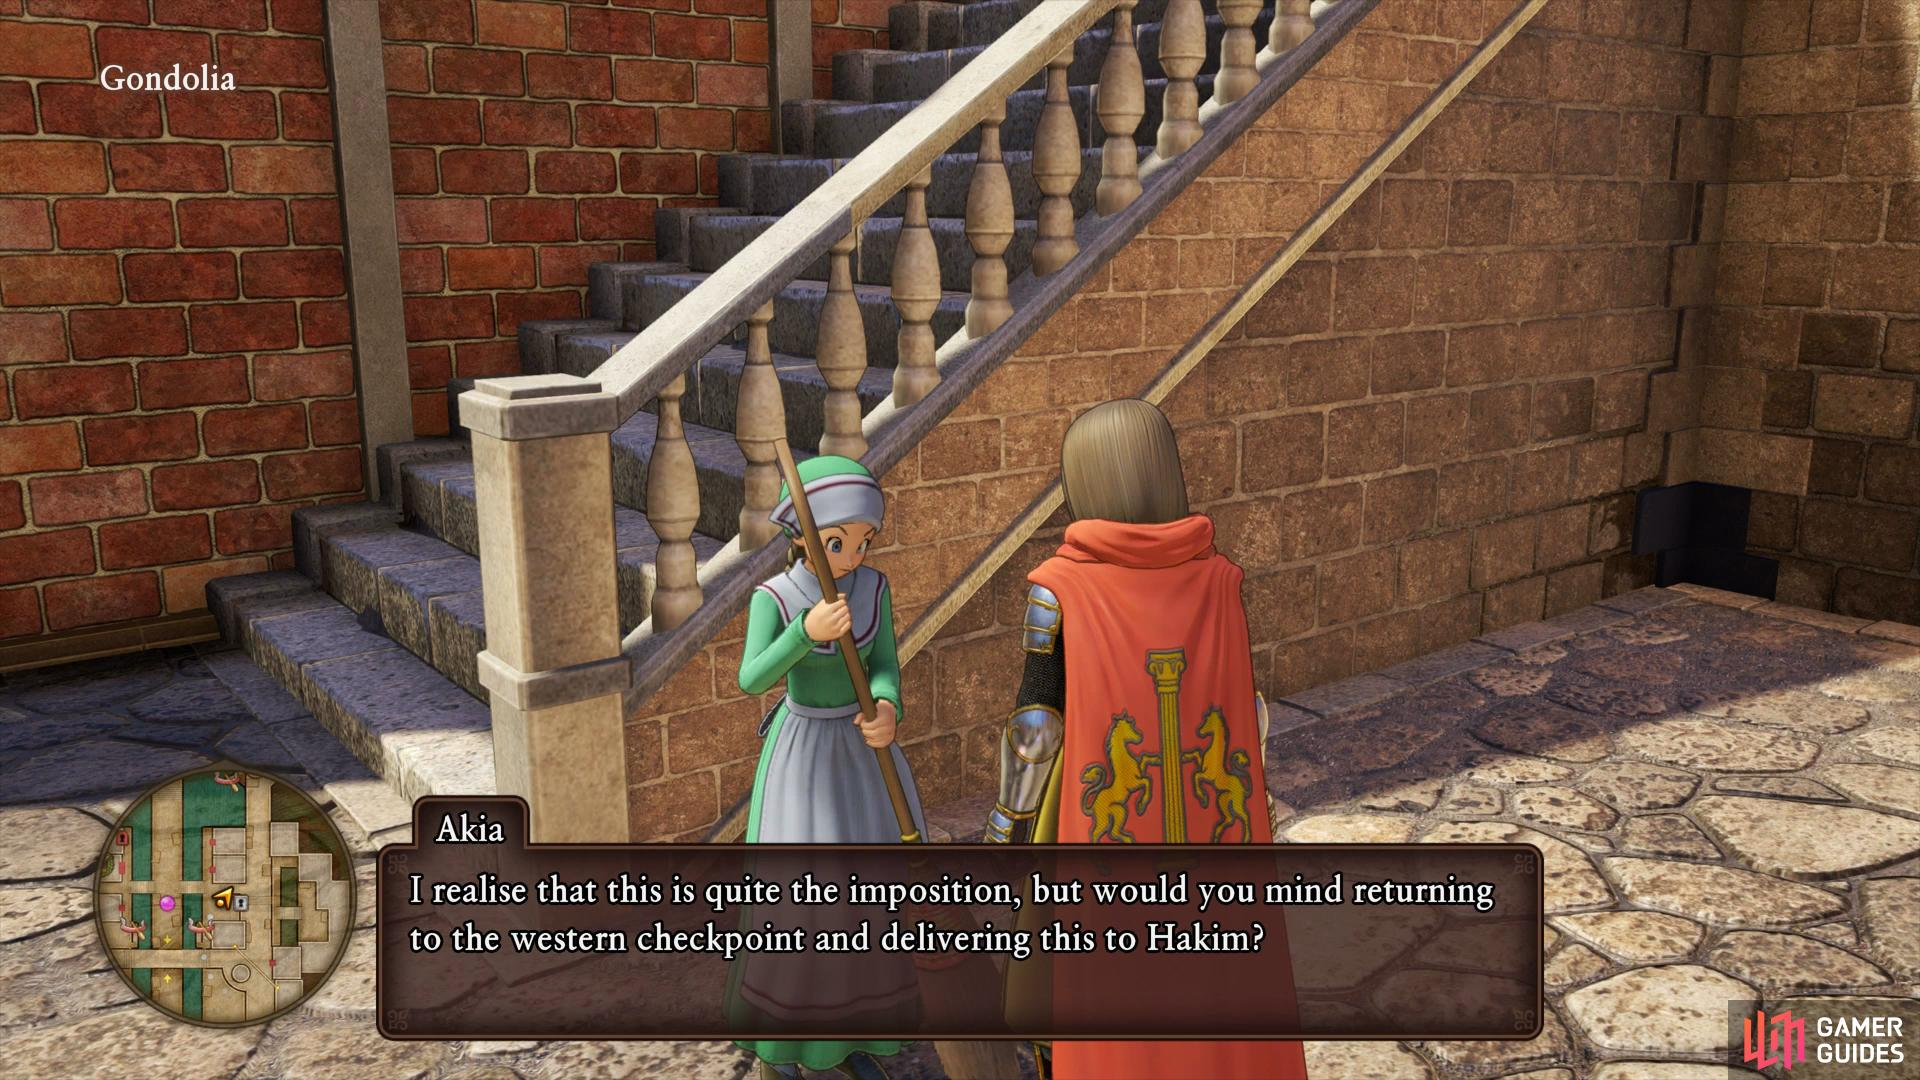 You'll find the girl, Akia, from Quest 09 just outside the Doge's house